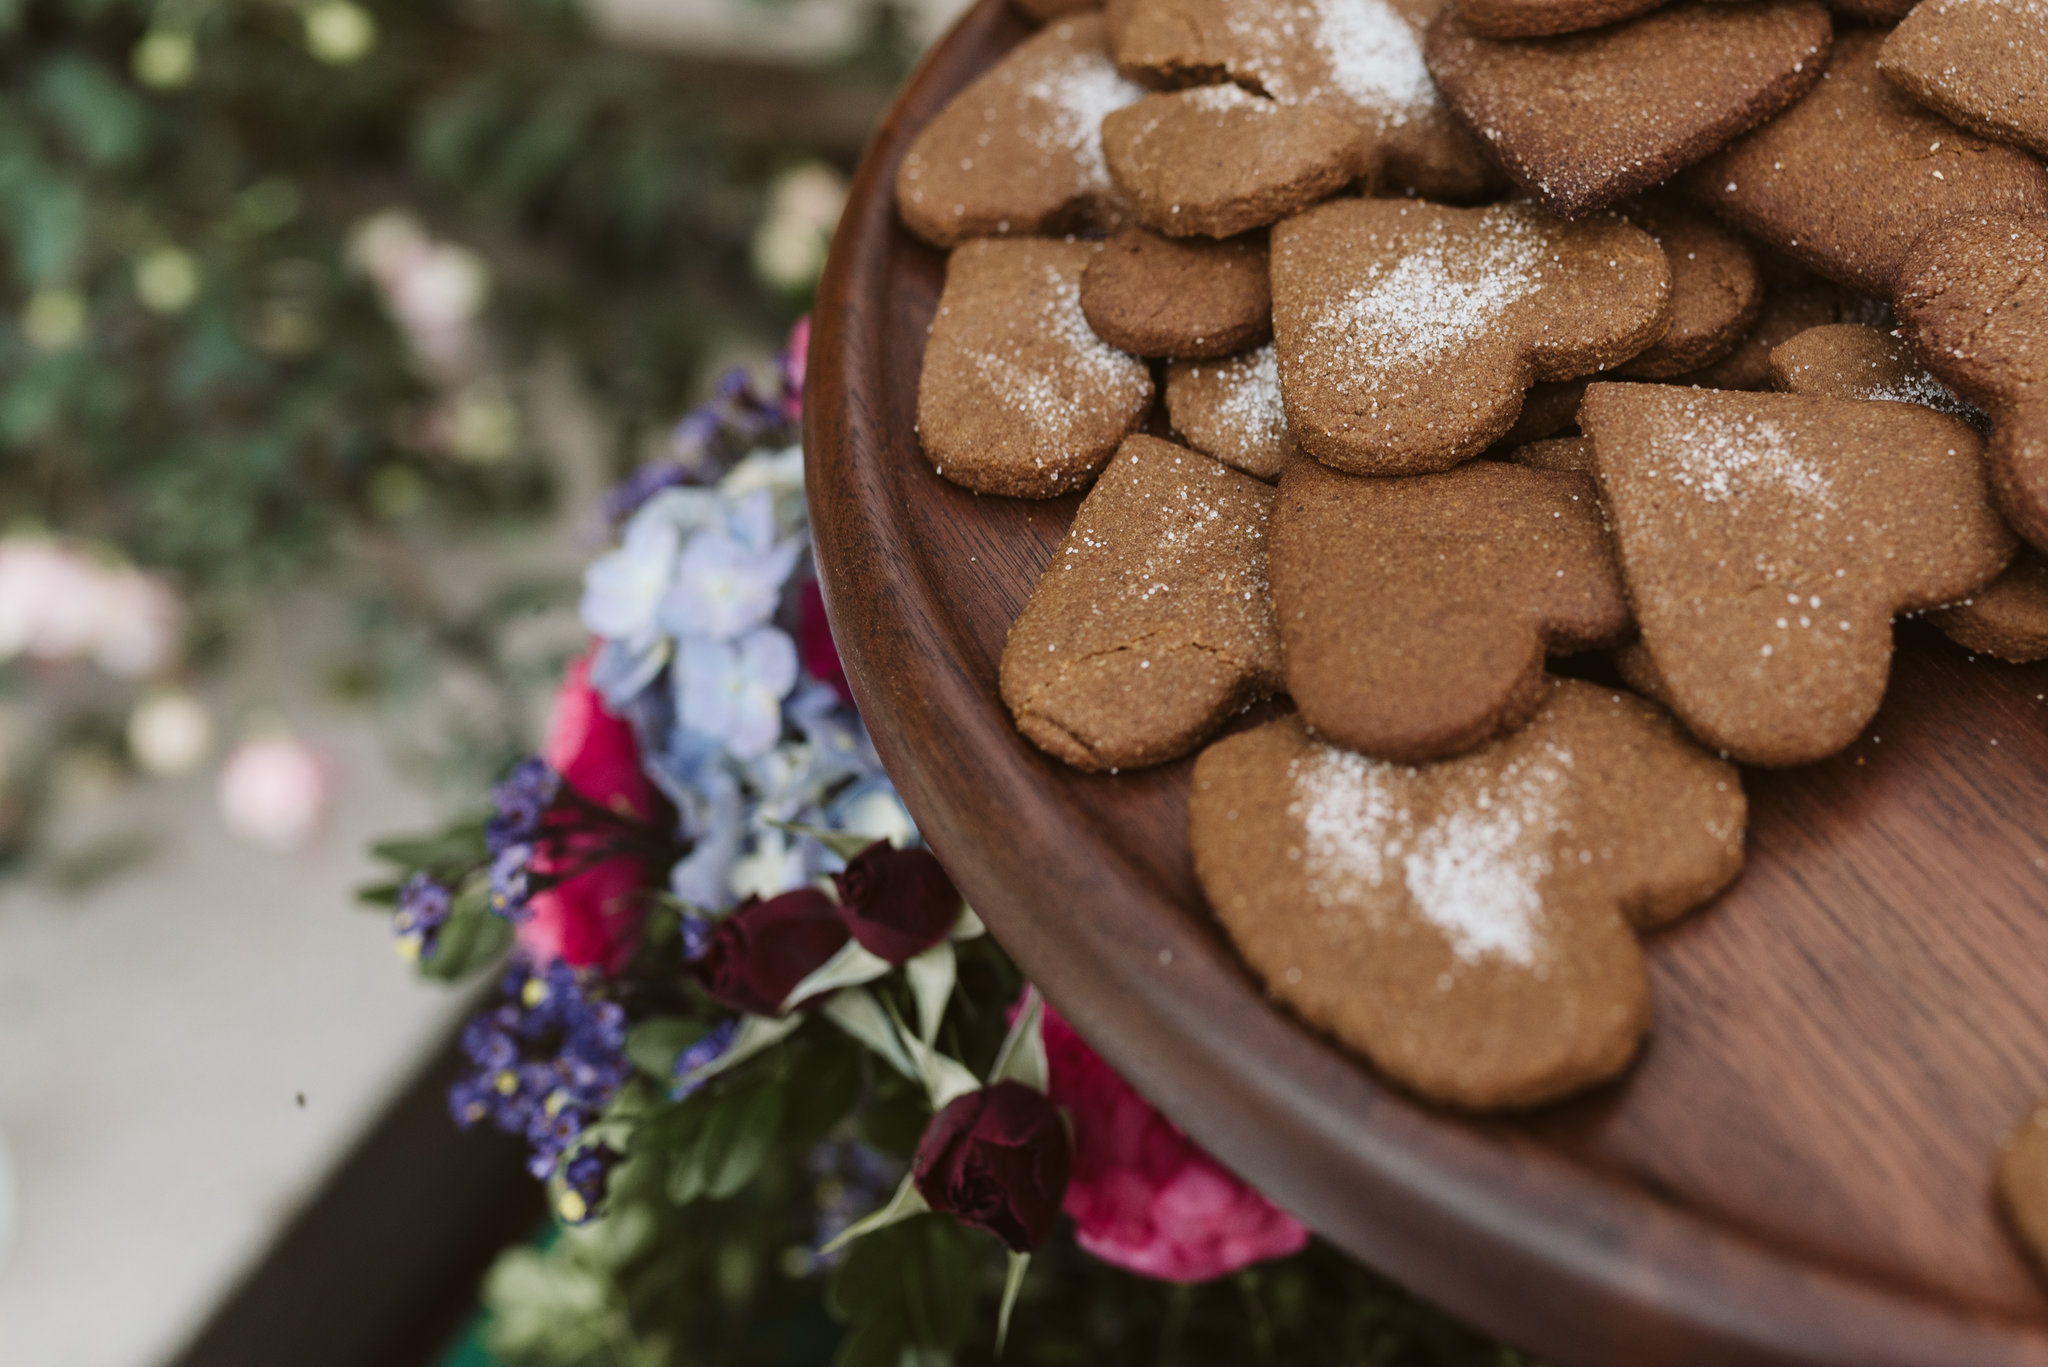 Annapolis, Quaker Wedding, Maryland Wedding Photographer, Intimate, Small Wedding, Vintage, DIY, Ginger Cookies, Heart Shaped Cookies, Handmade desserts